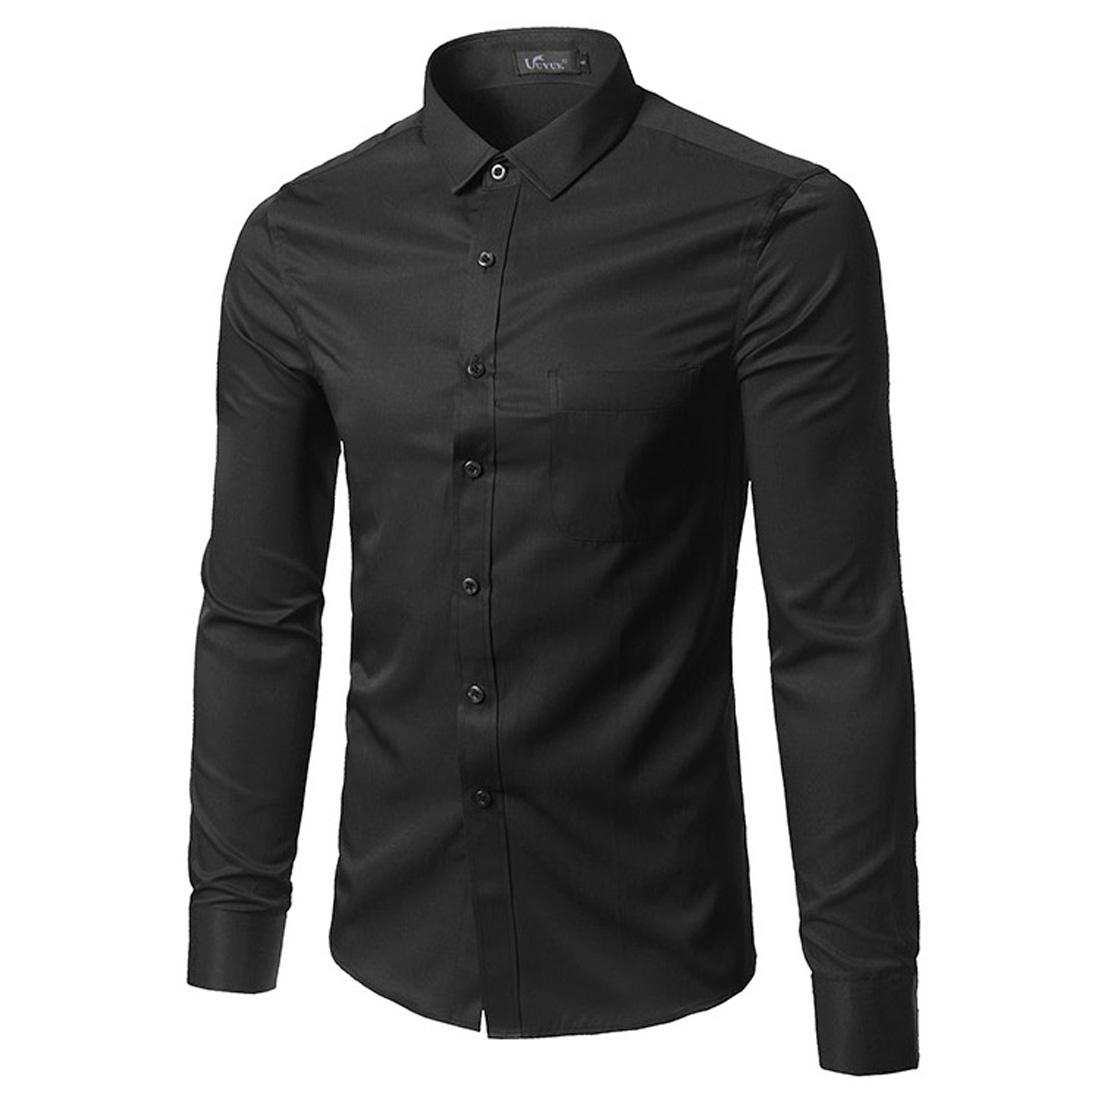 ab7cdd2c 2019 Business Office Work Classical Black Shirts Men Turn Down Collar Long  Sleeve Slim Formal Camisa Social Masculina Button Up Shirt From Baica, ...